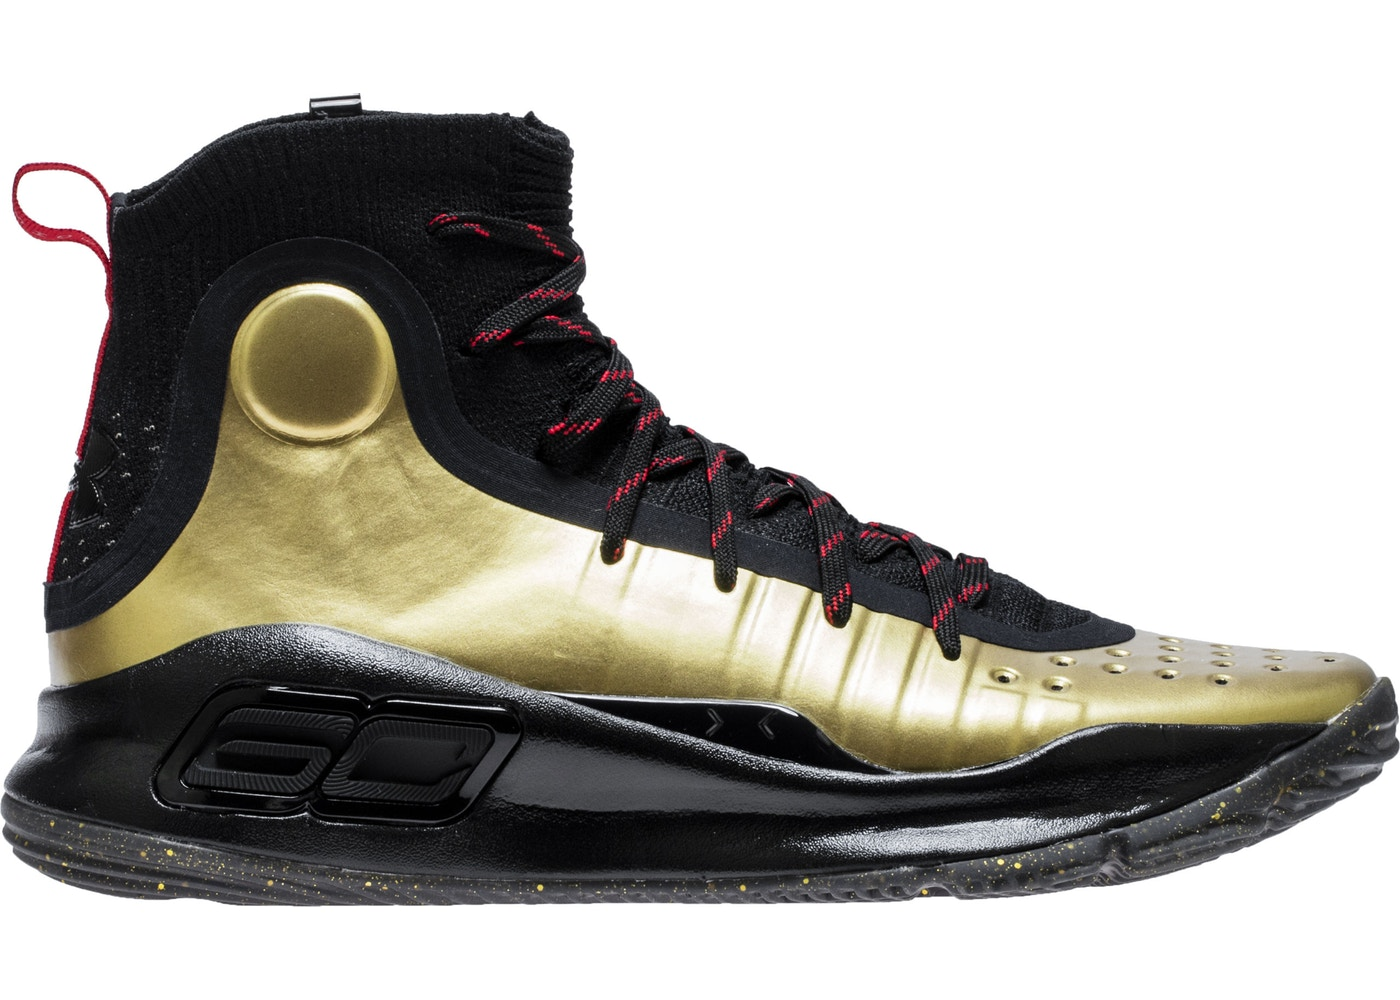 reputable site ee0b5 753e2 Buy Under Armour Shoes & Deadstock Sneakers